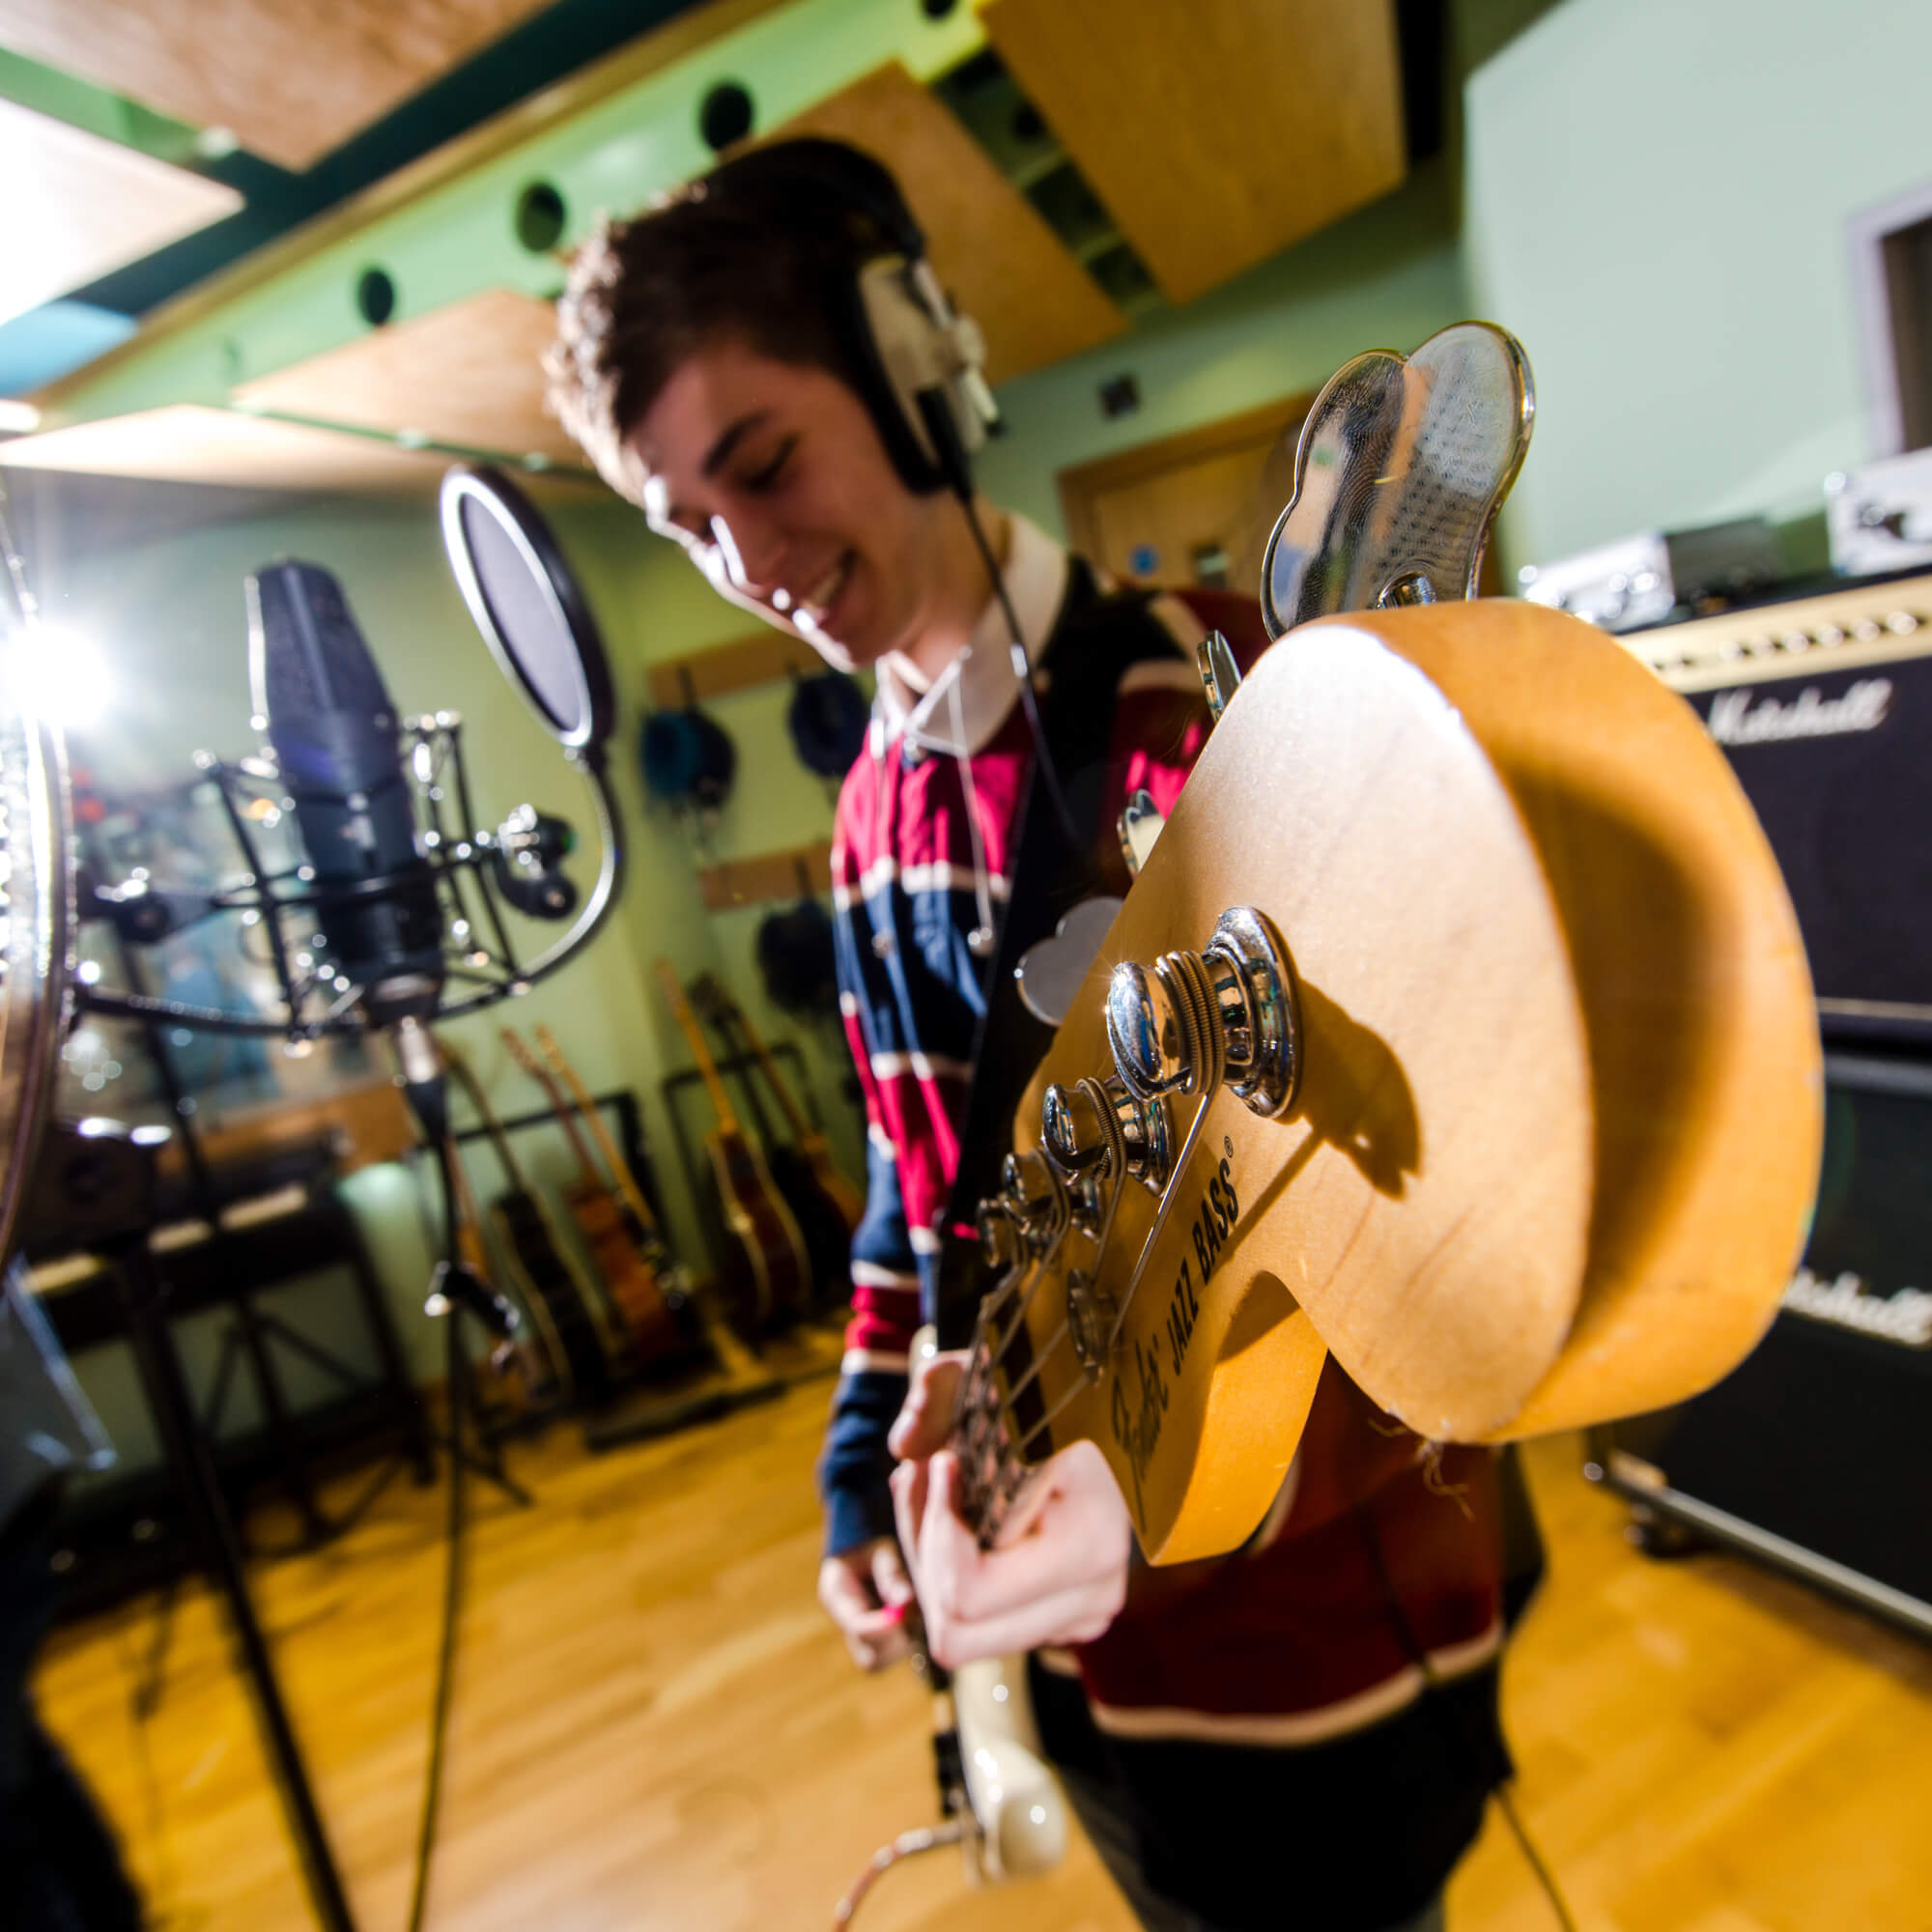 A close up of a man playing guitar in a recording studio